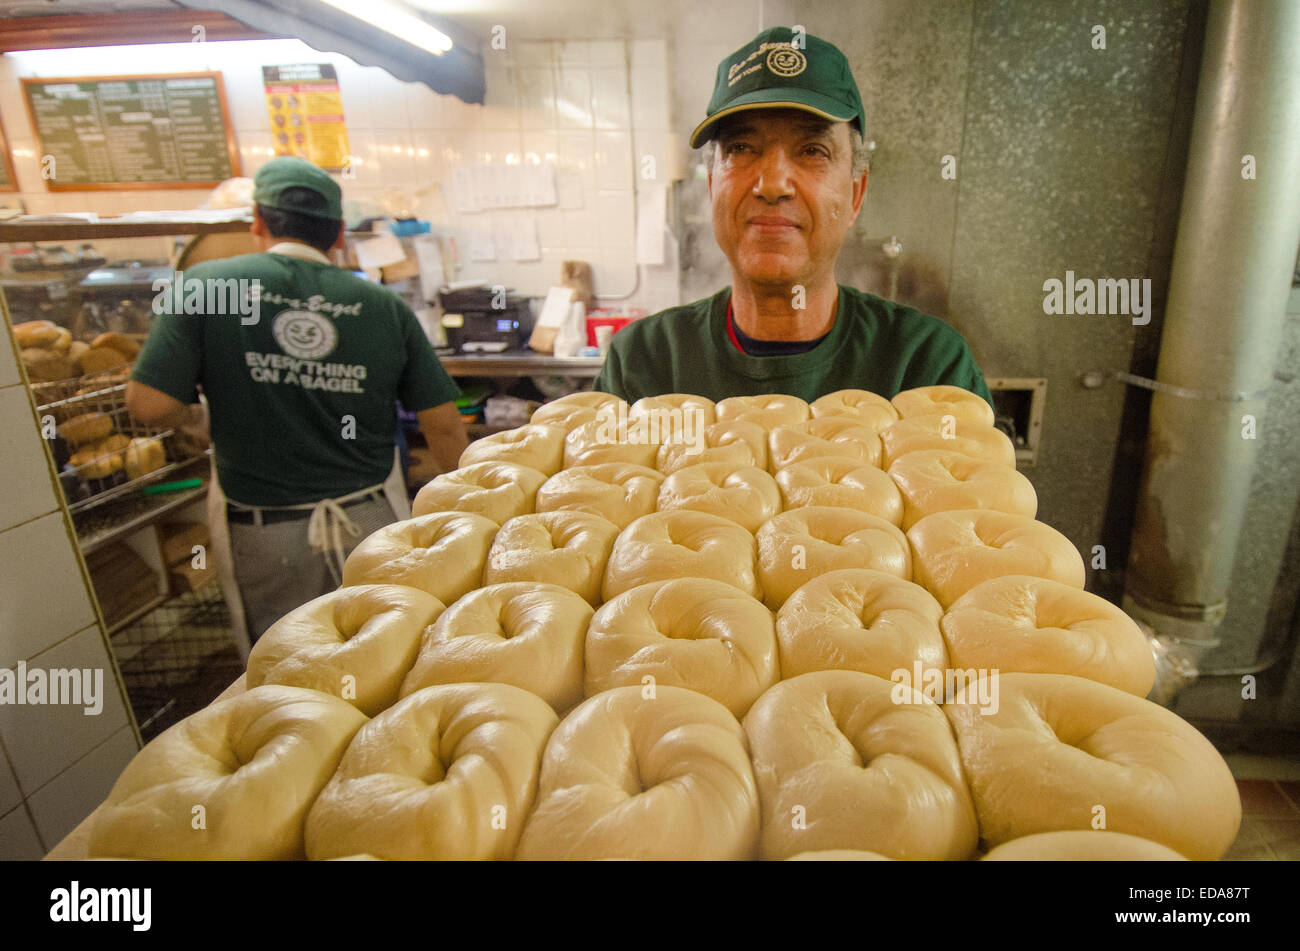 Kettle-boiled bagels are transported to the oven for its final stage of preparation at New York City's Ess-a - Stock Image